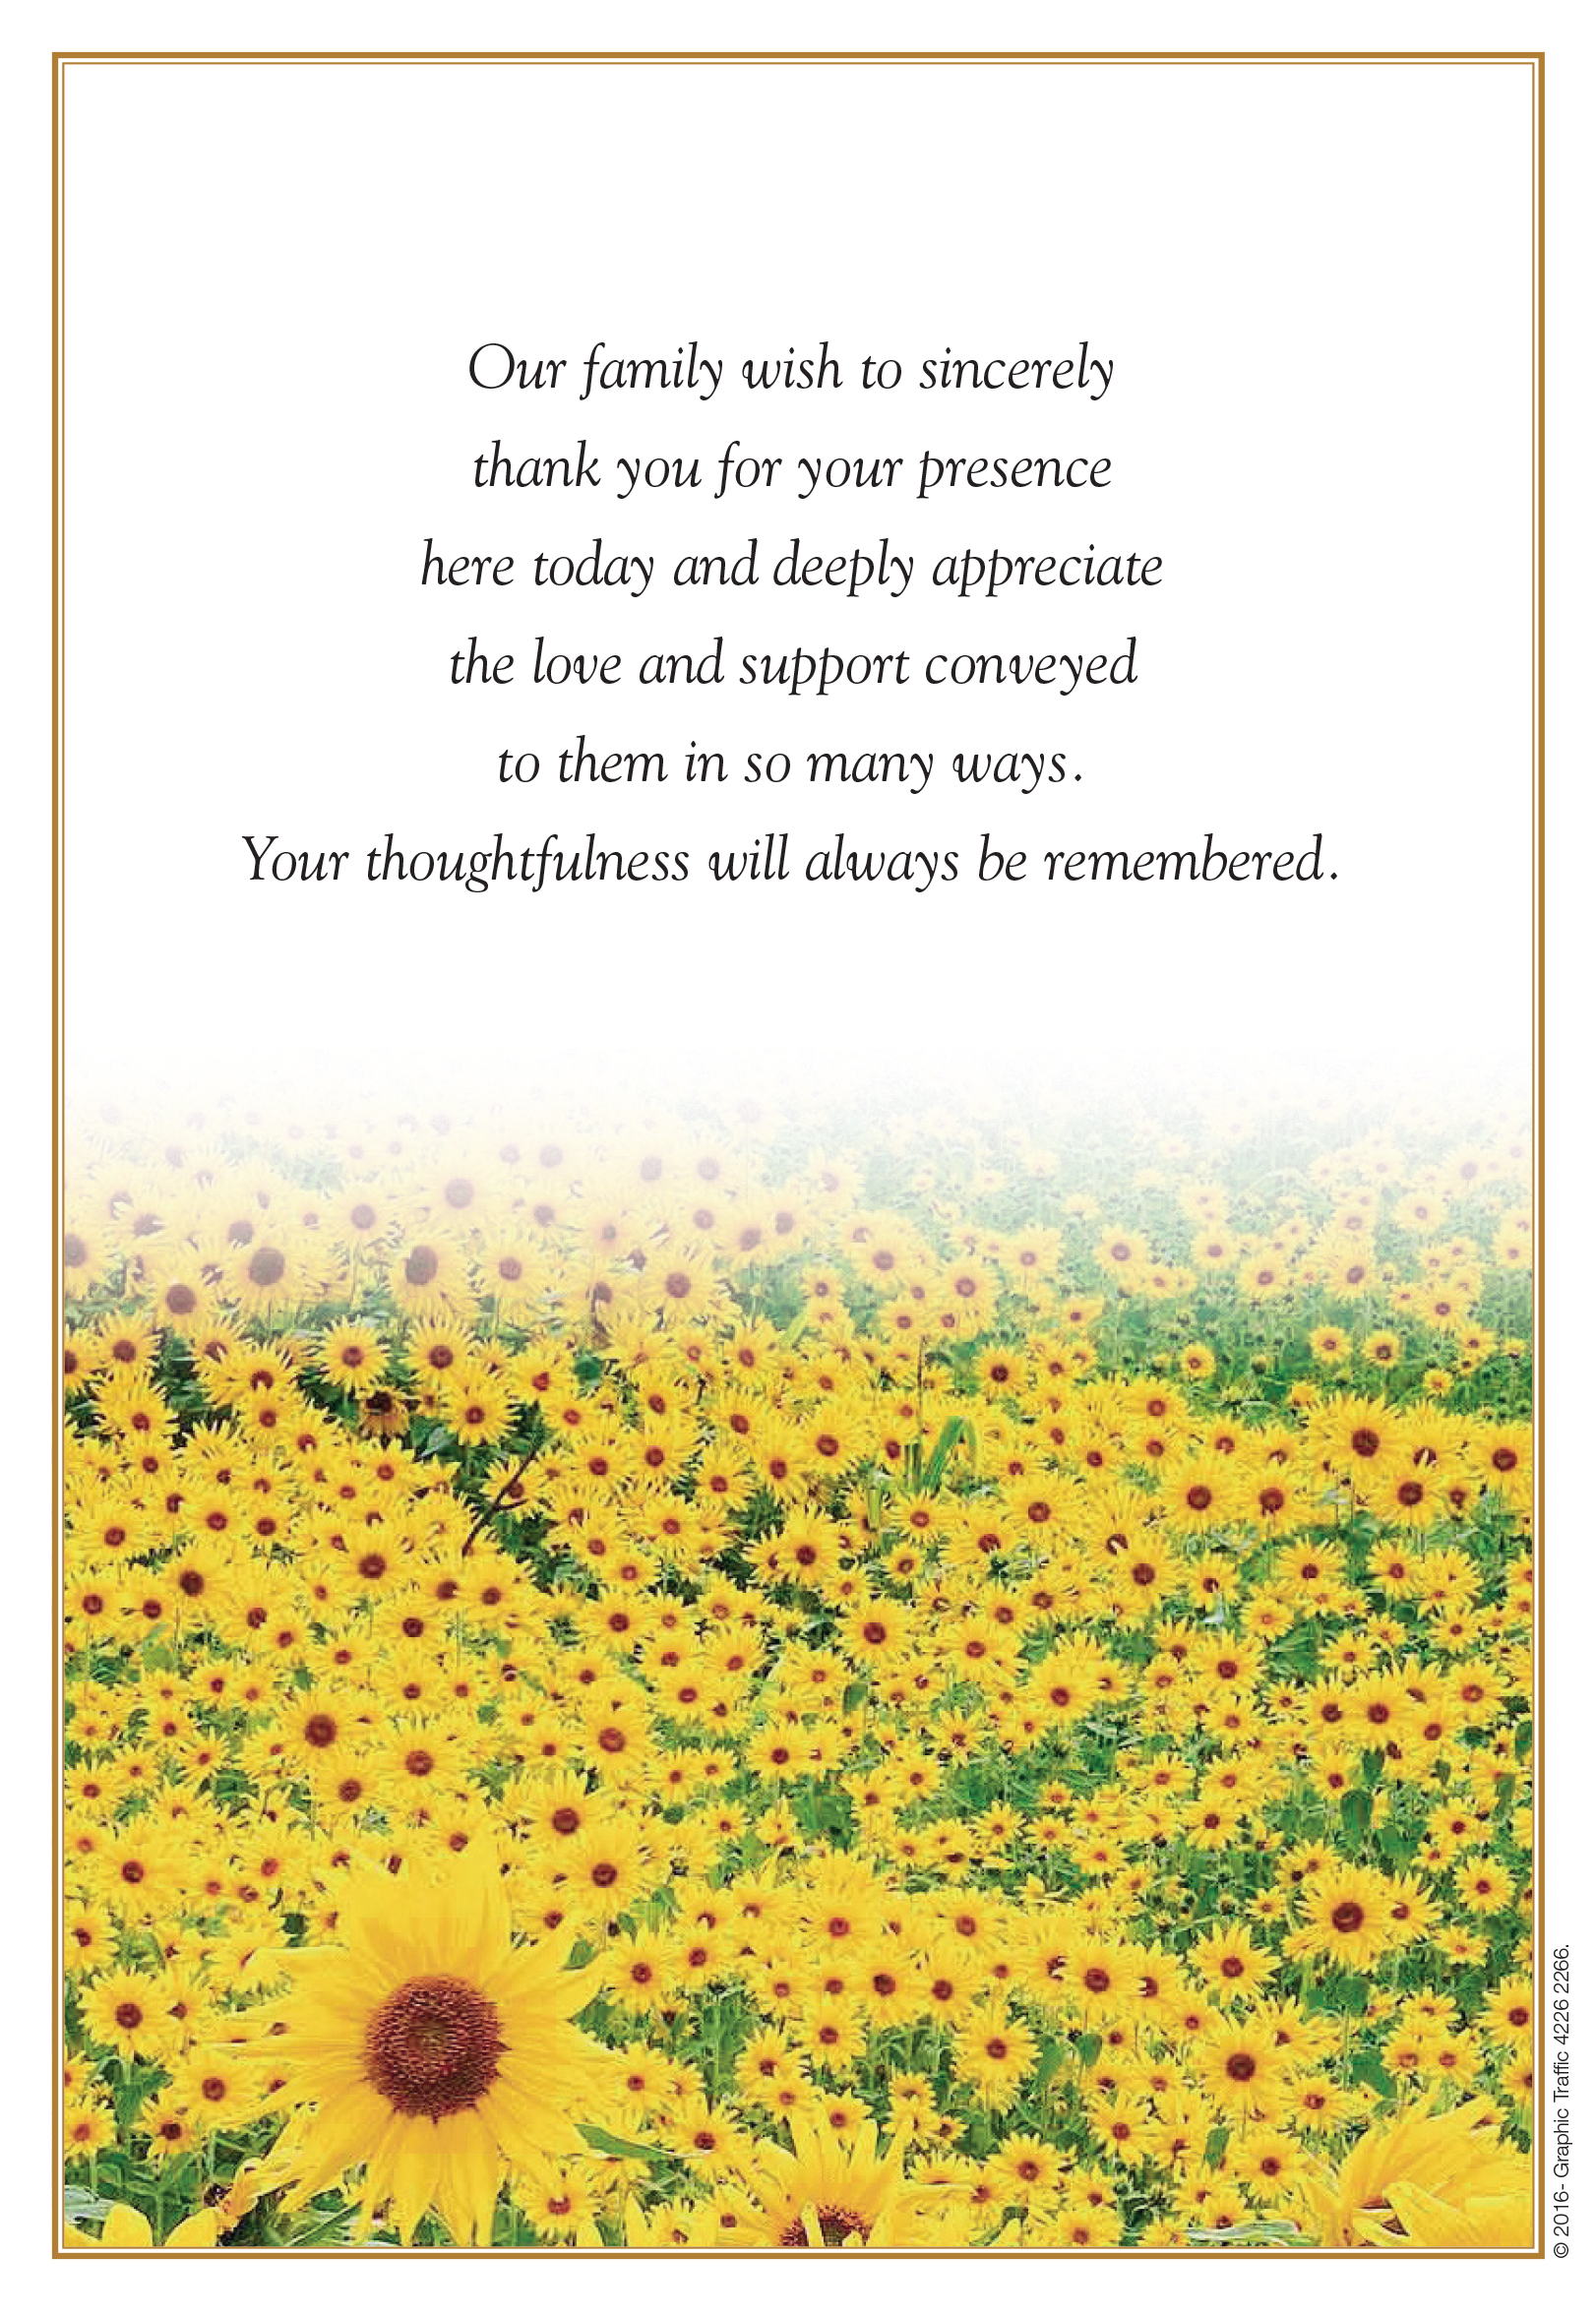 BK18 - Sunflowers (Back)